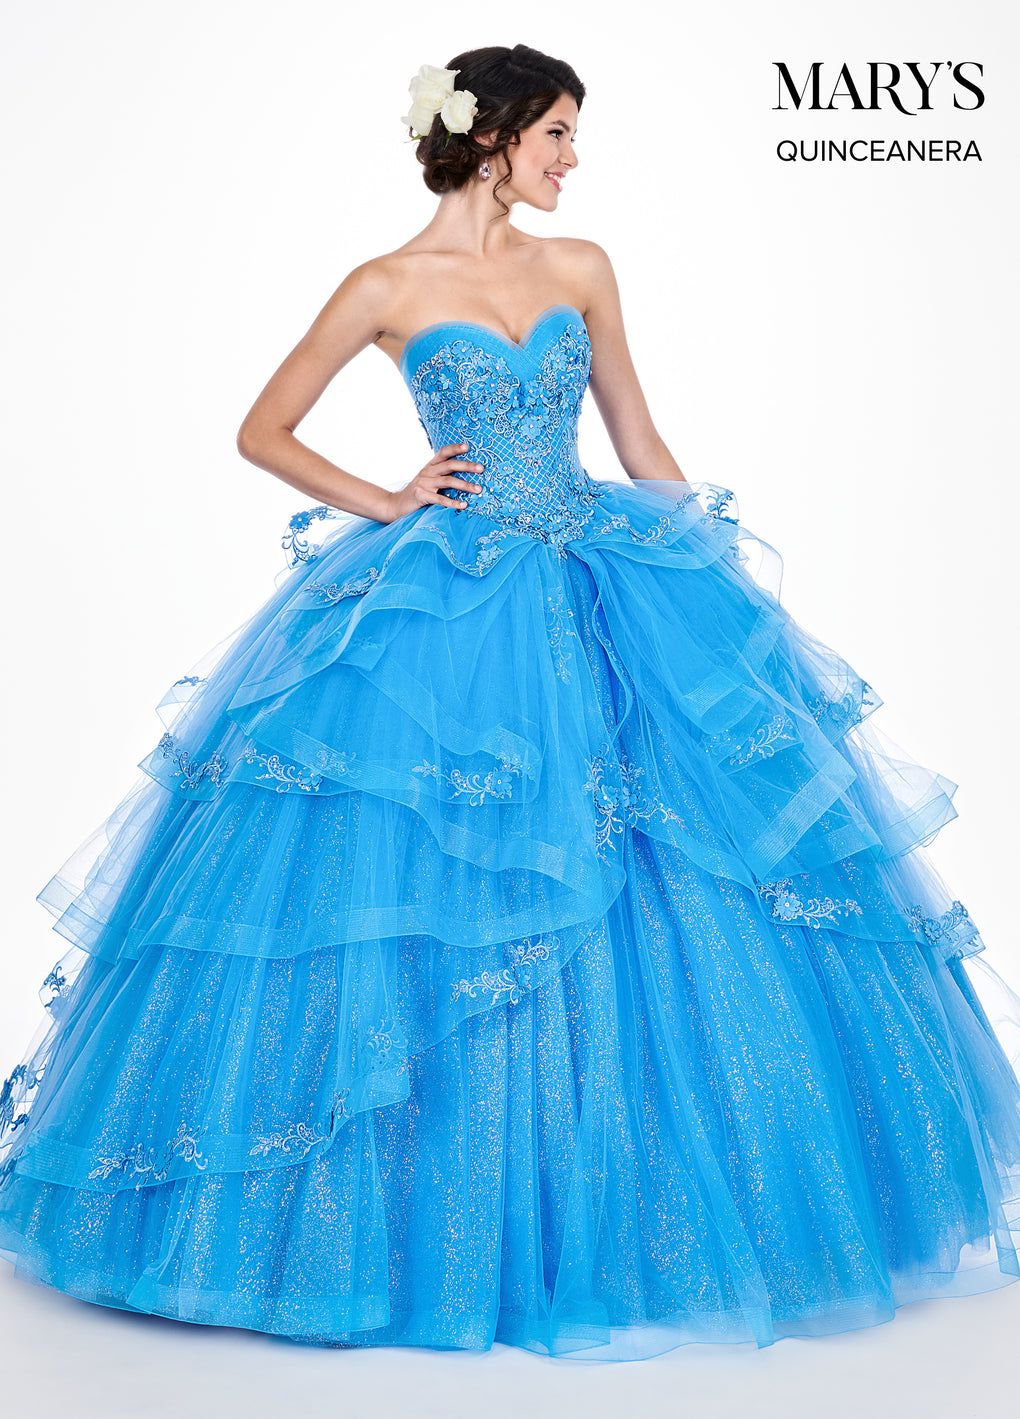 Marys Quinceanera Dresses in Deep Blush or Periwinkle Color